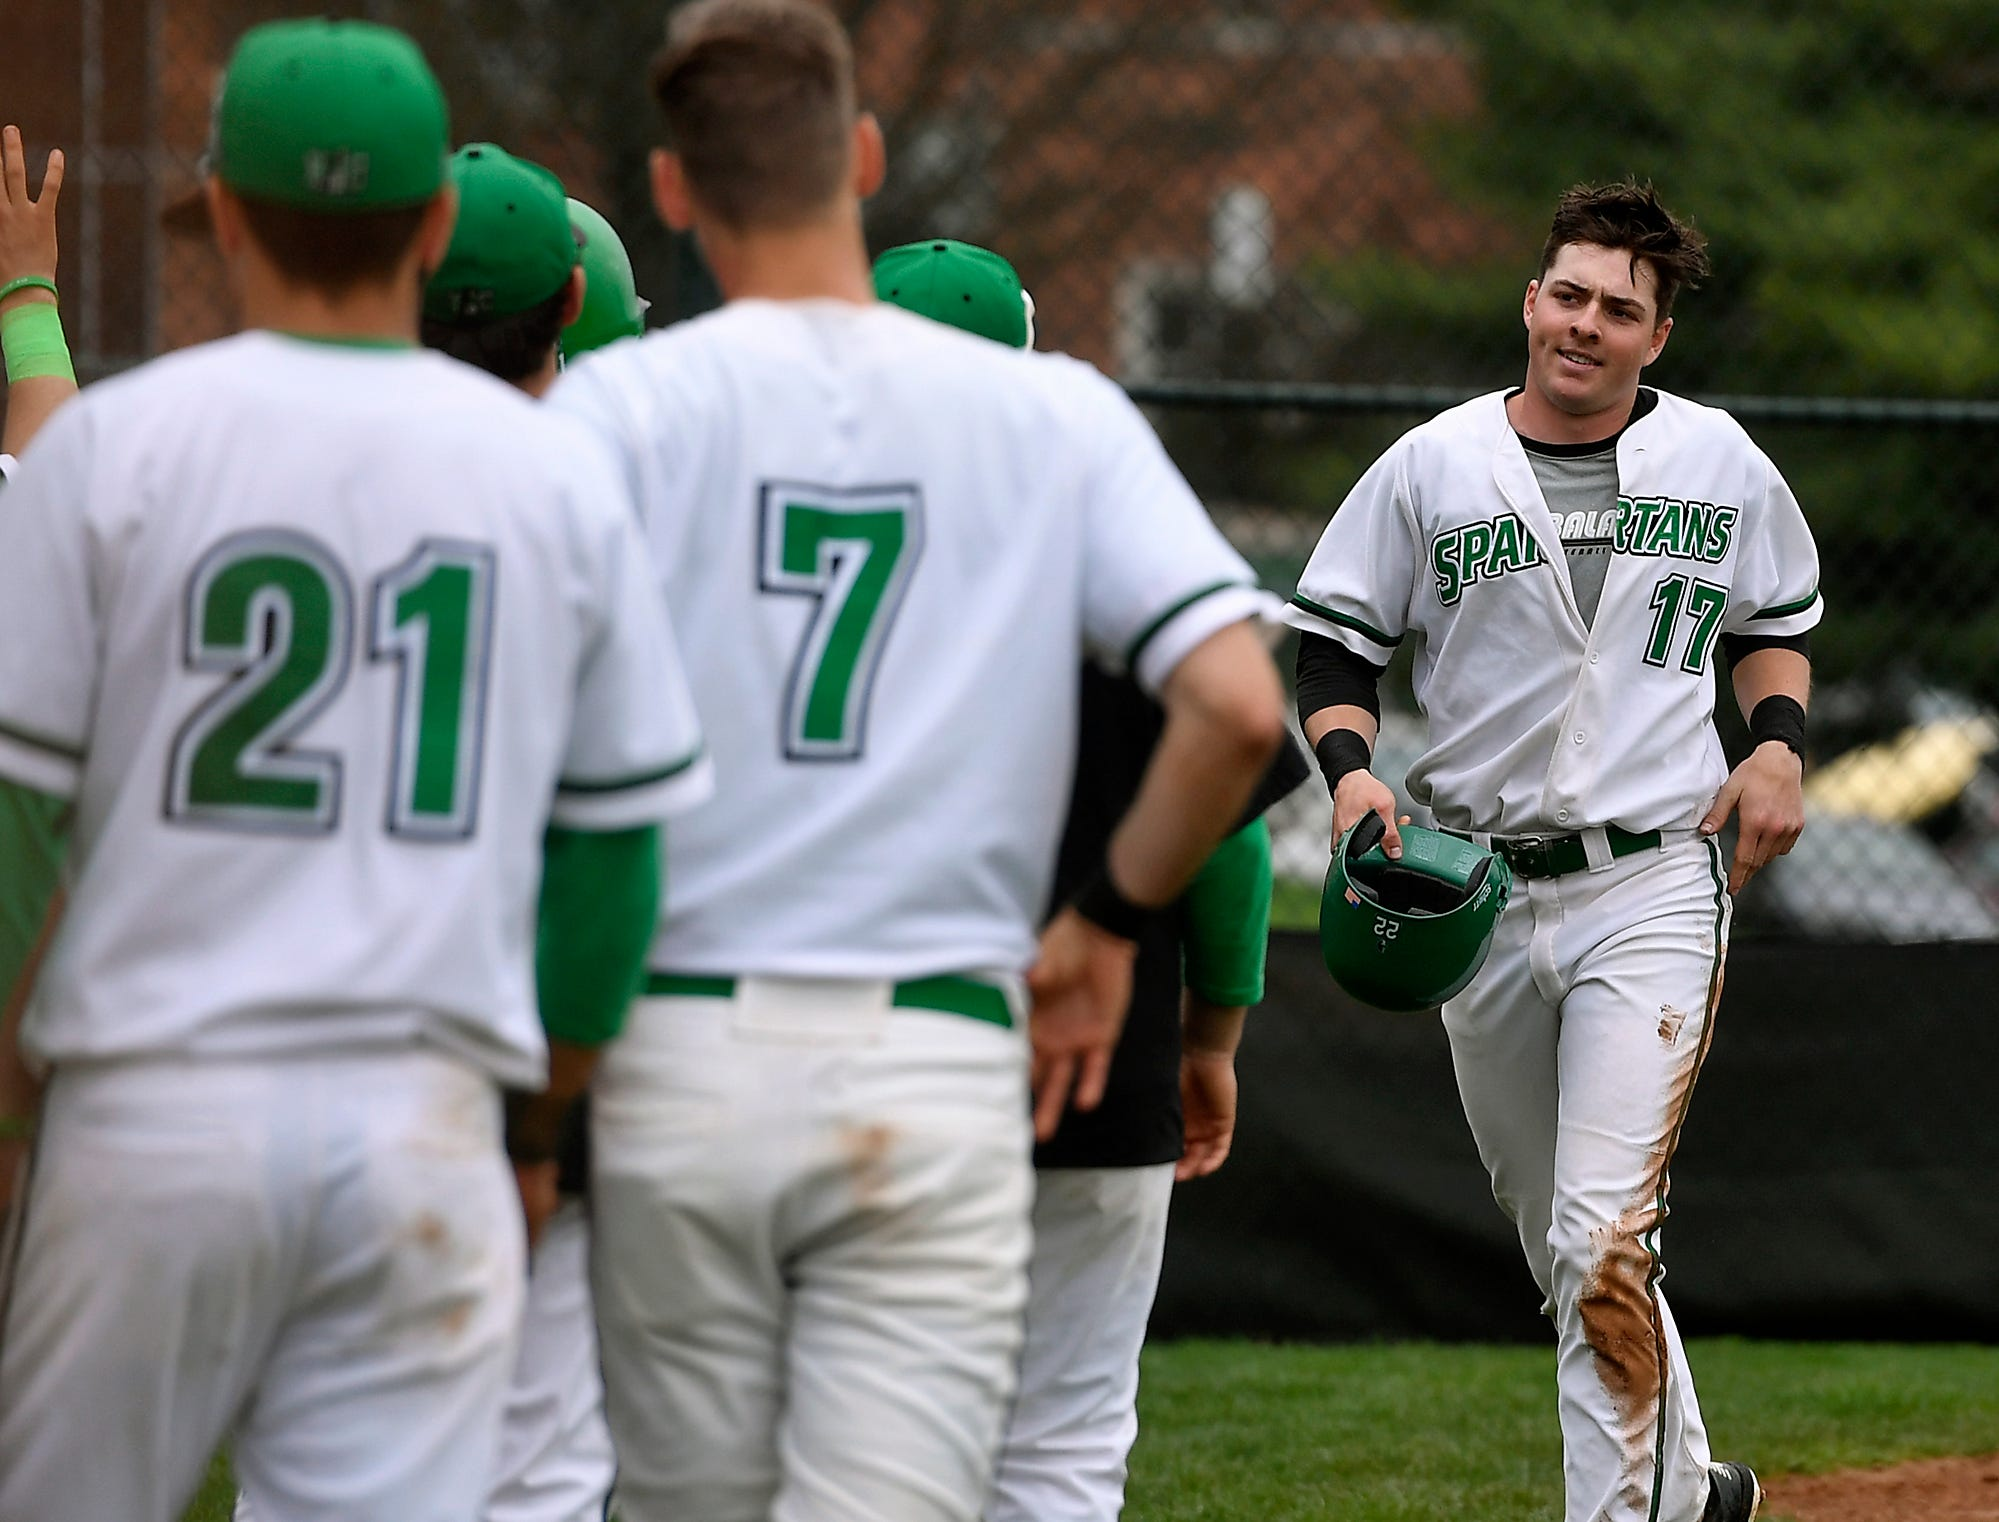 Grant Oberholtzer of York College is greeted by his teammates after connecting with a solo homerun against Rudgers Camden in the sixth inning, Sunday, April 14, 2019.John A. Pavoncello photo